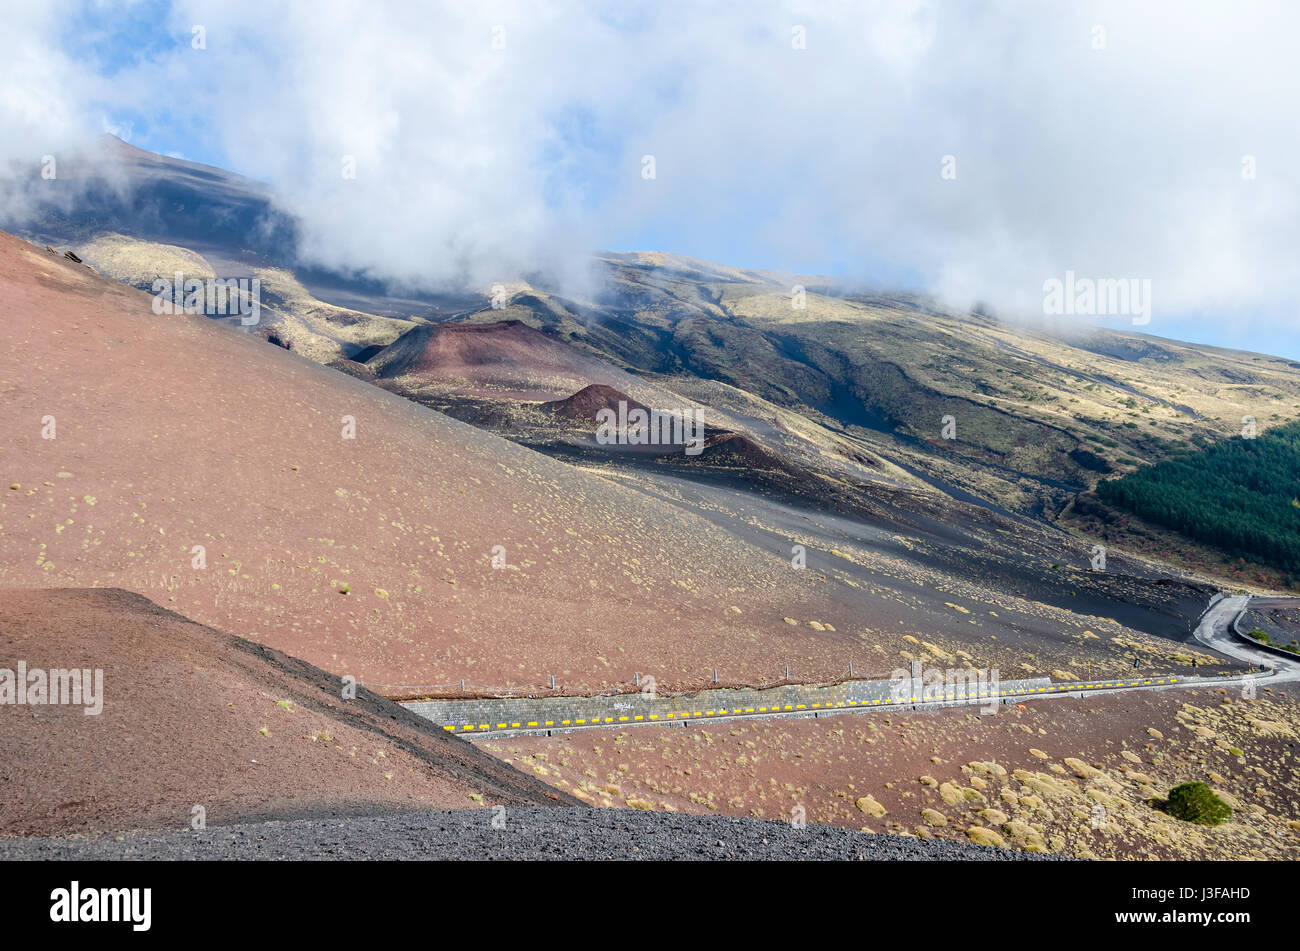 Southern flank of Mount Etna, an active stratovolcano on the east coast of Sicily, Italy, showing lateral crater - Stock Image